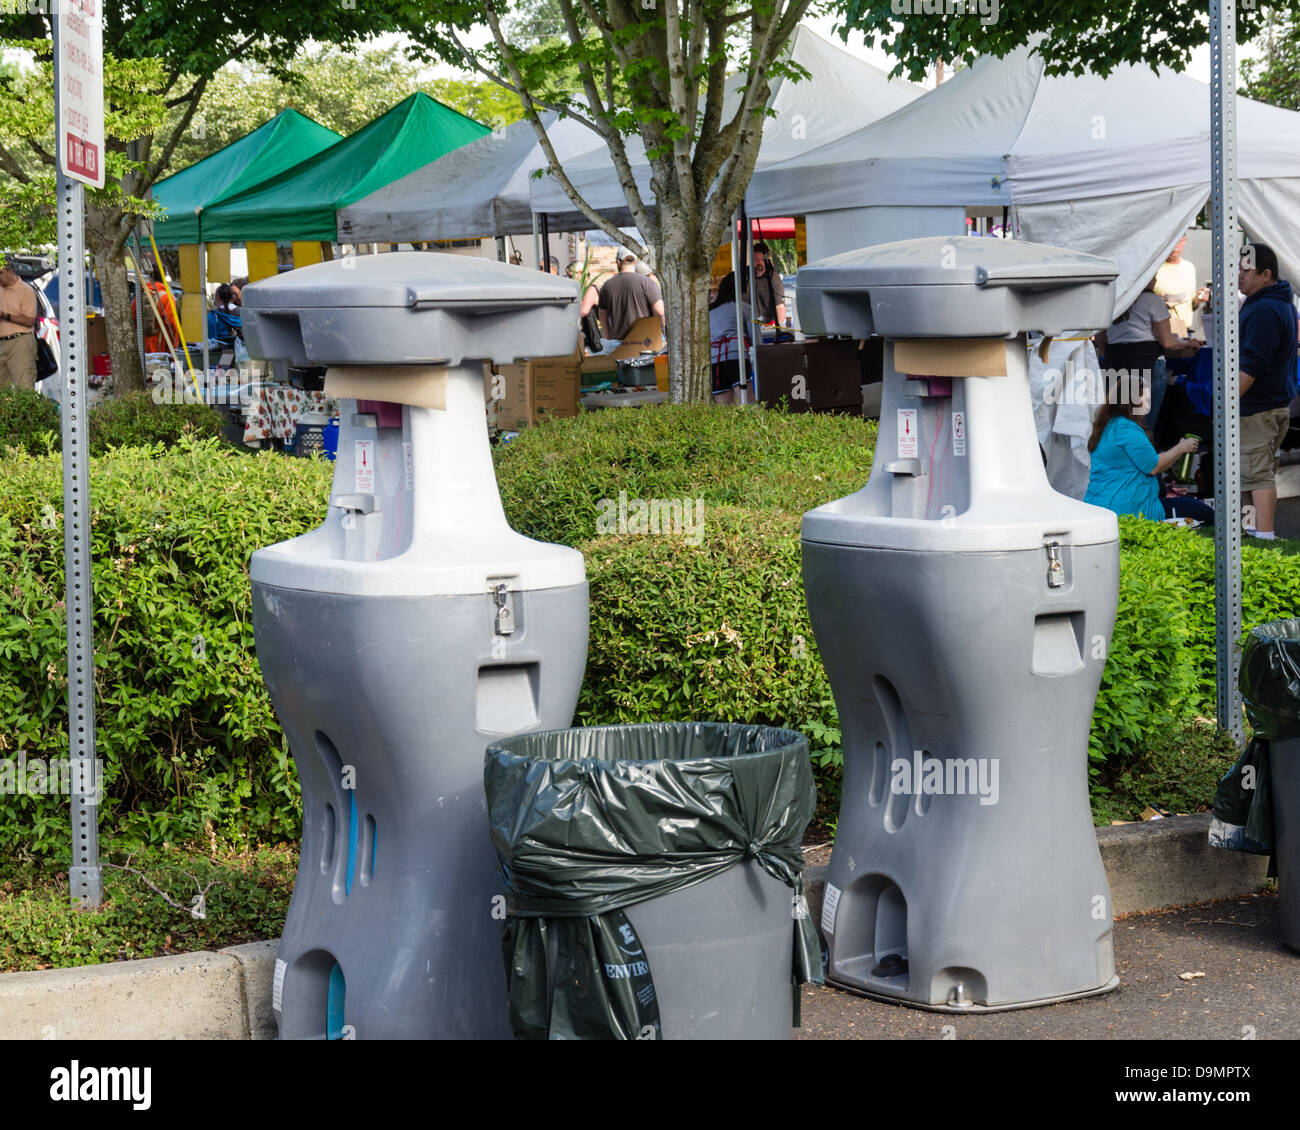 Beaverton Oregon United States.  Hand wash stations allow customers to wash up while at the market - Stock Image